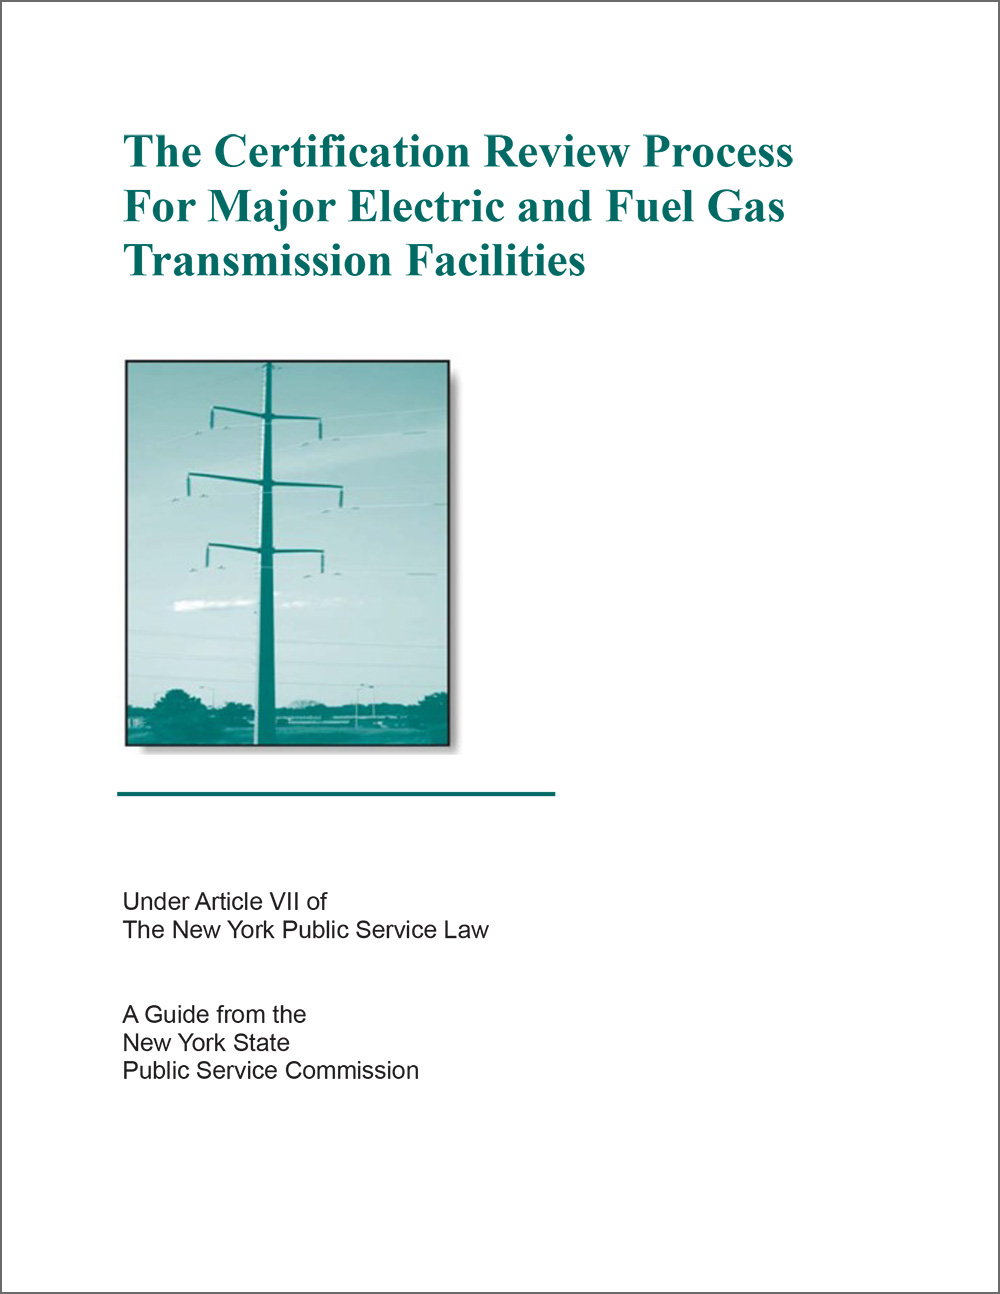 Download the NYS Guide to Article VII.